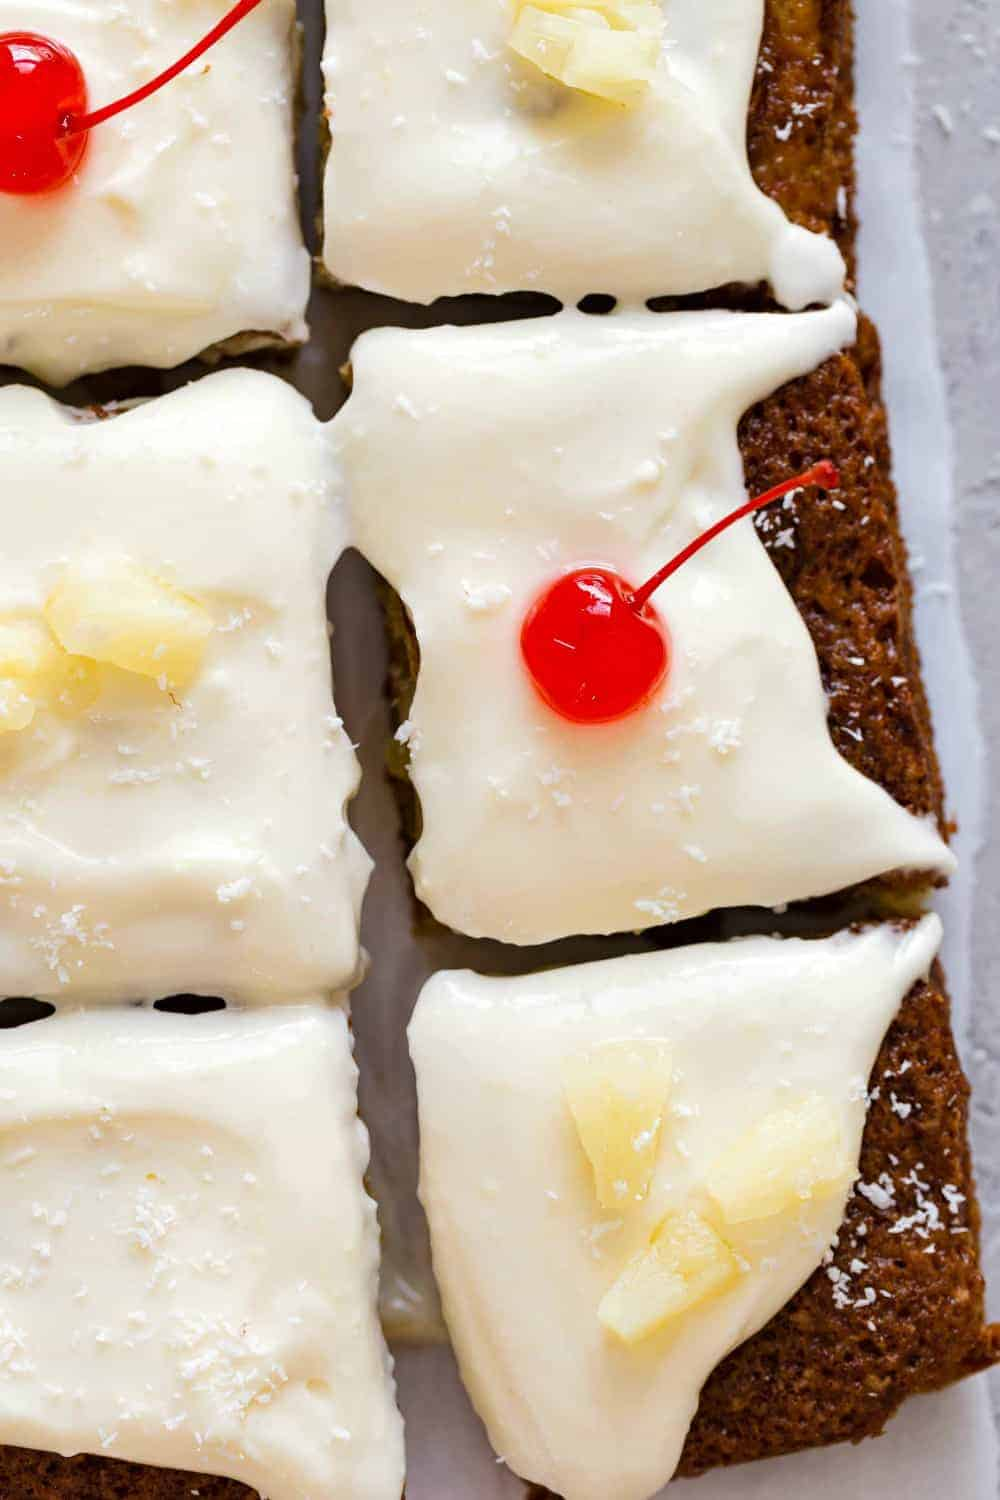 Sliced pineapple cake topped with cherries and pineapple